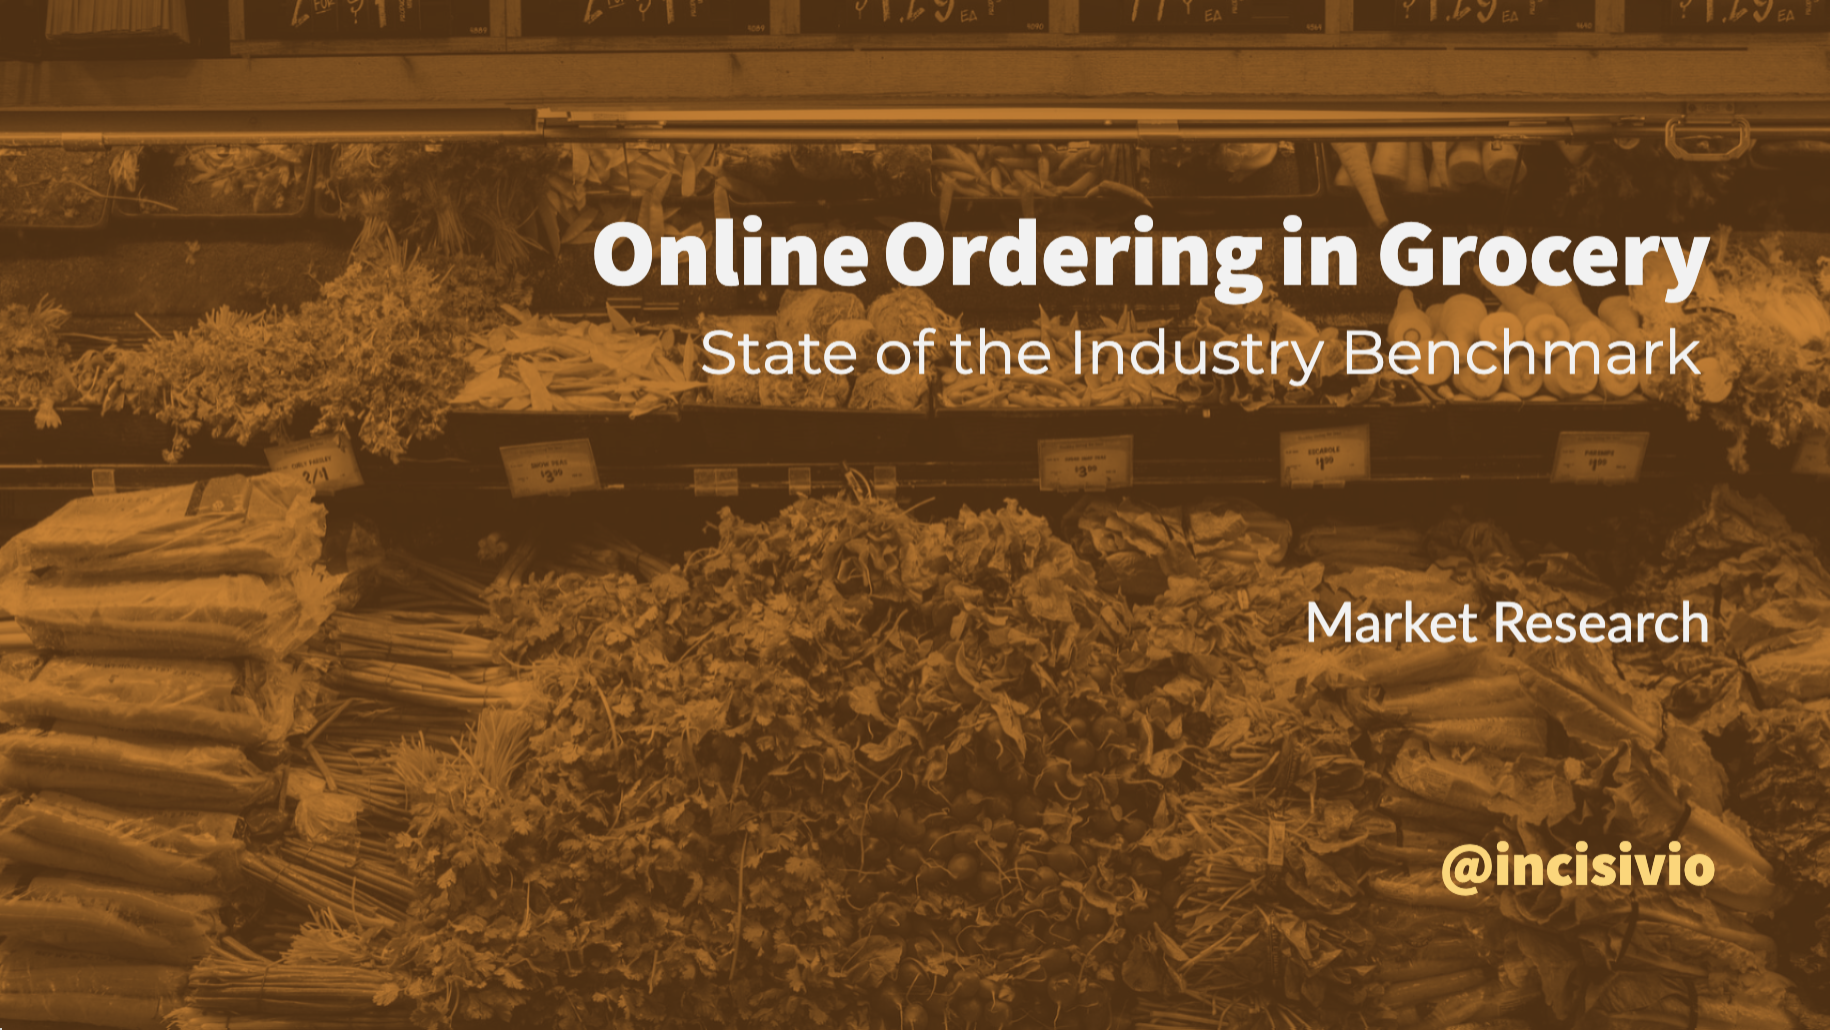 Online Ordering in Grocery